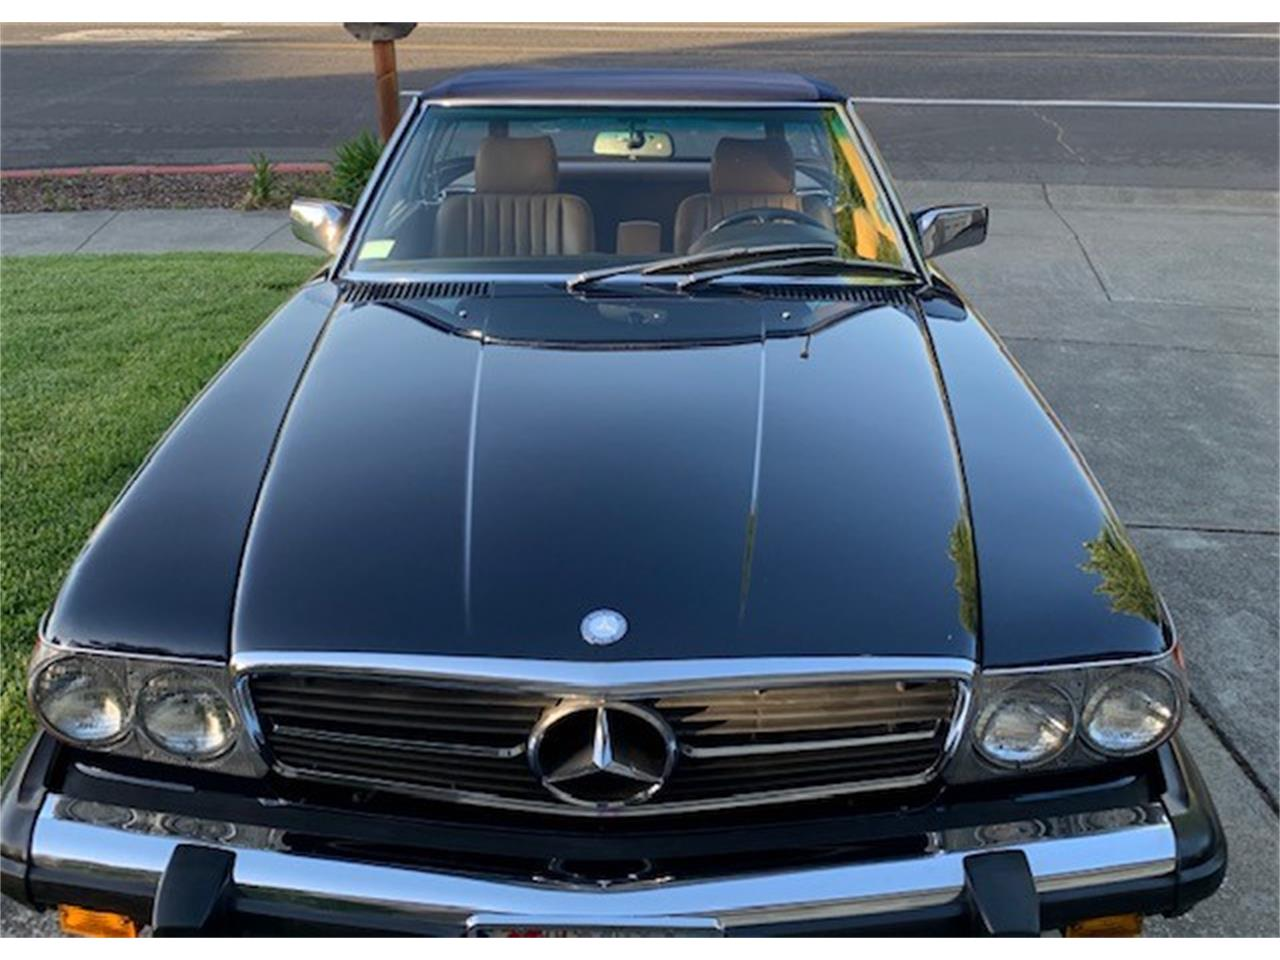 Large Picture of 1989 Mercedes-Benz 560SL - $42,000.00 Offered by a Private Seller - Q2ZN